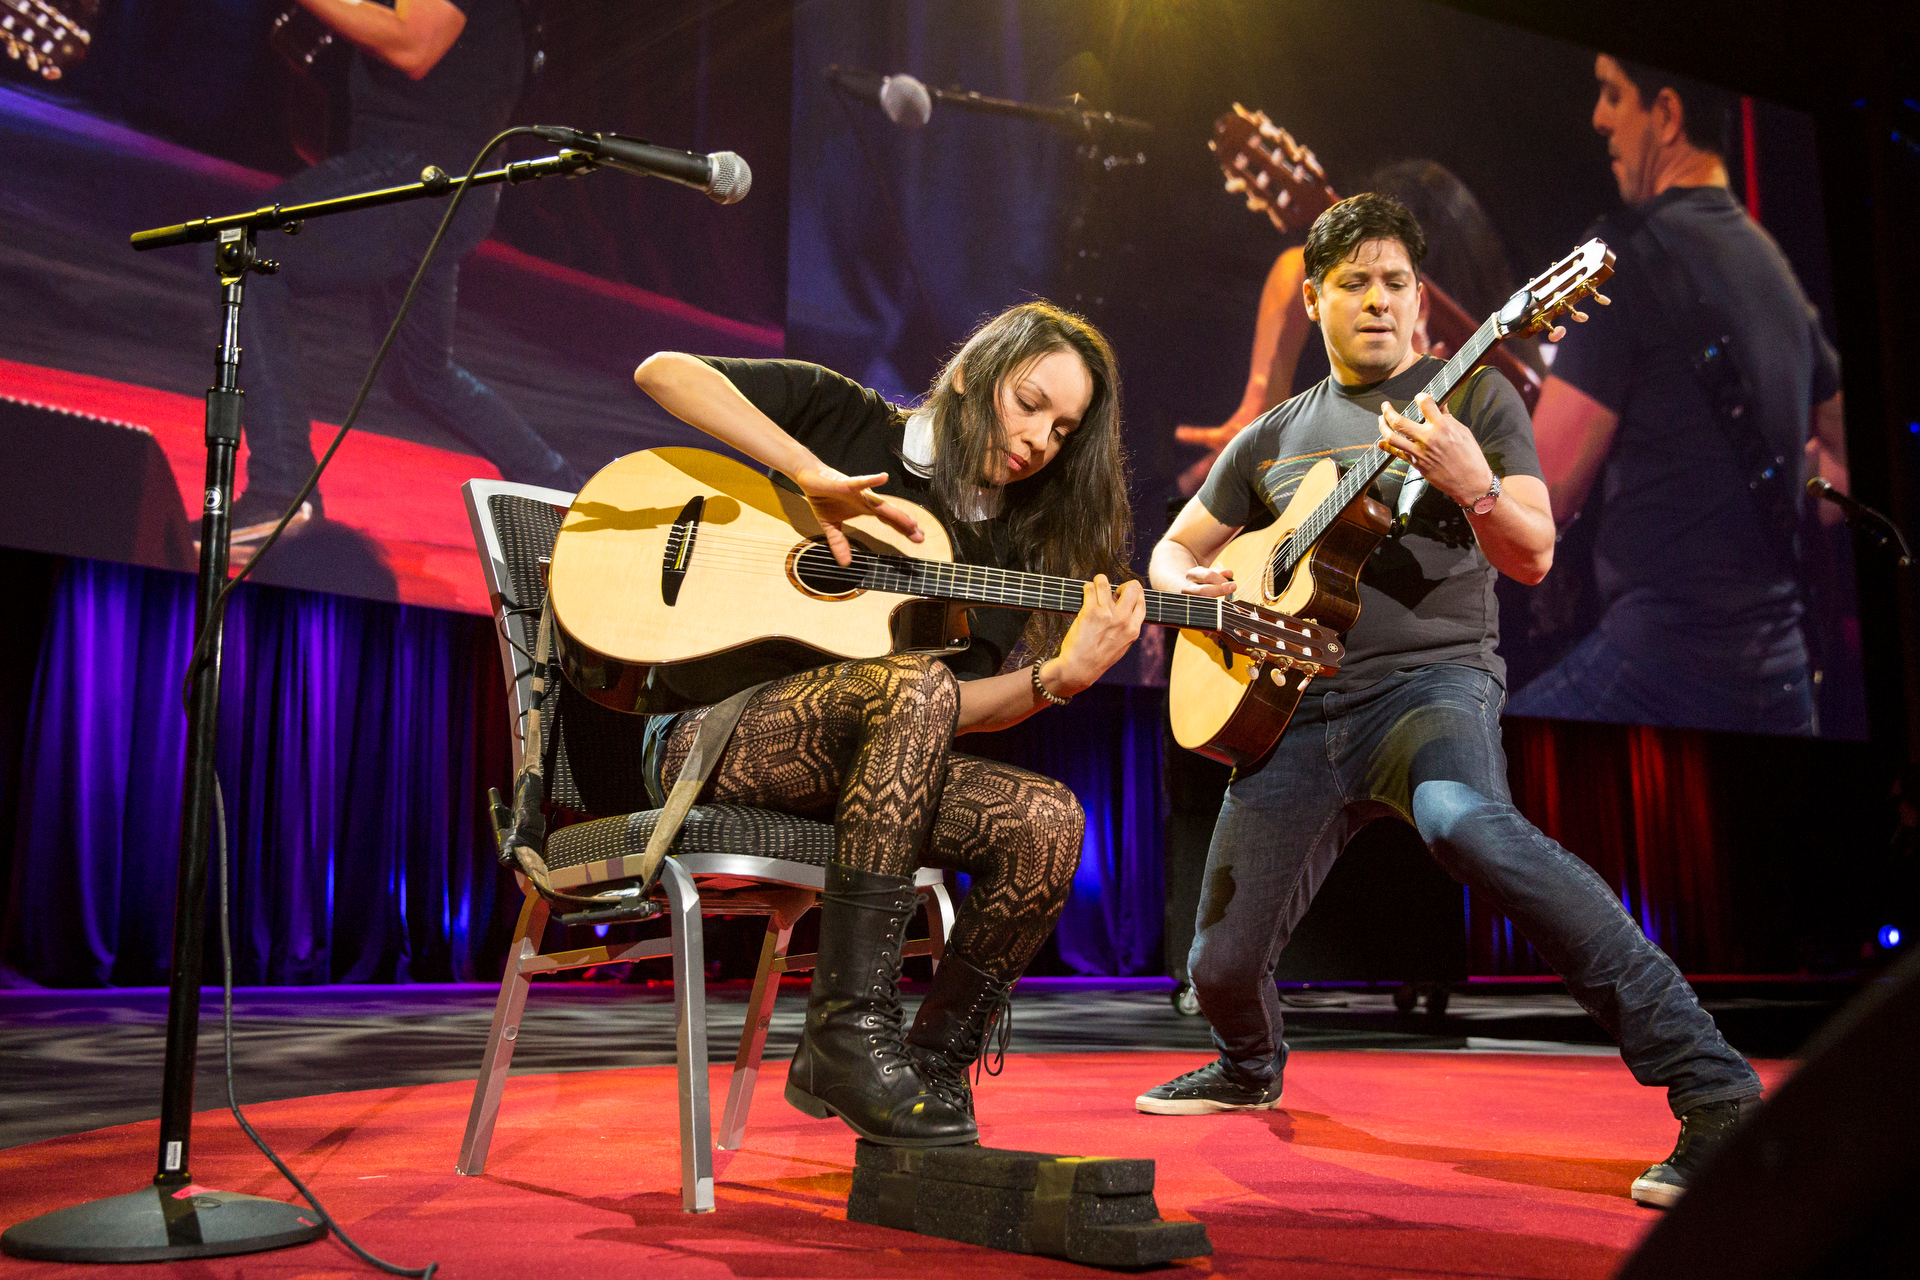 Rodrigo y Gabriela perform at TED2015 - Truth and Dare, Session 7. Photo: Bret Hartman/TED